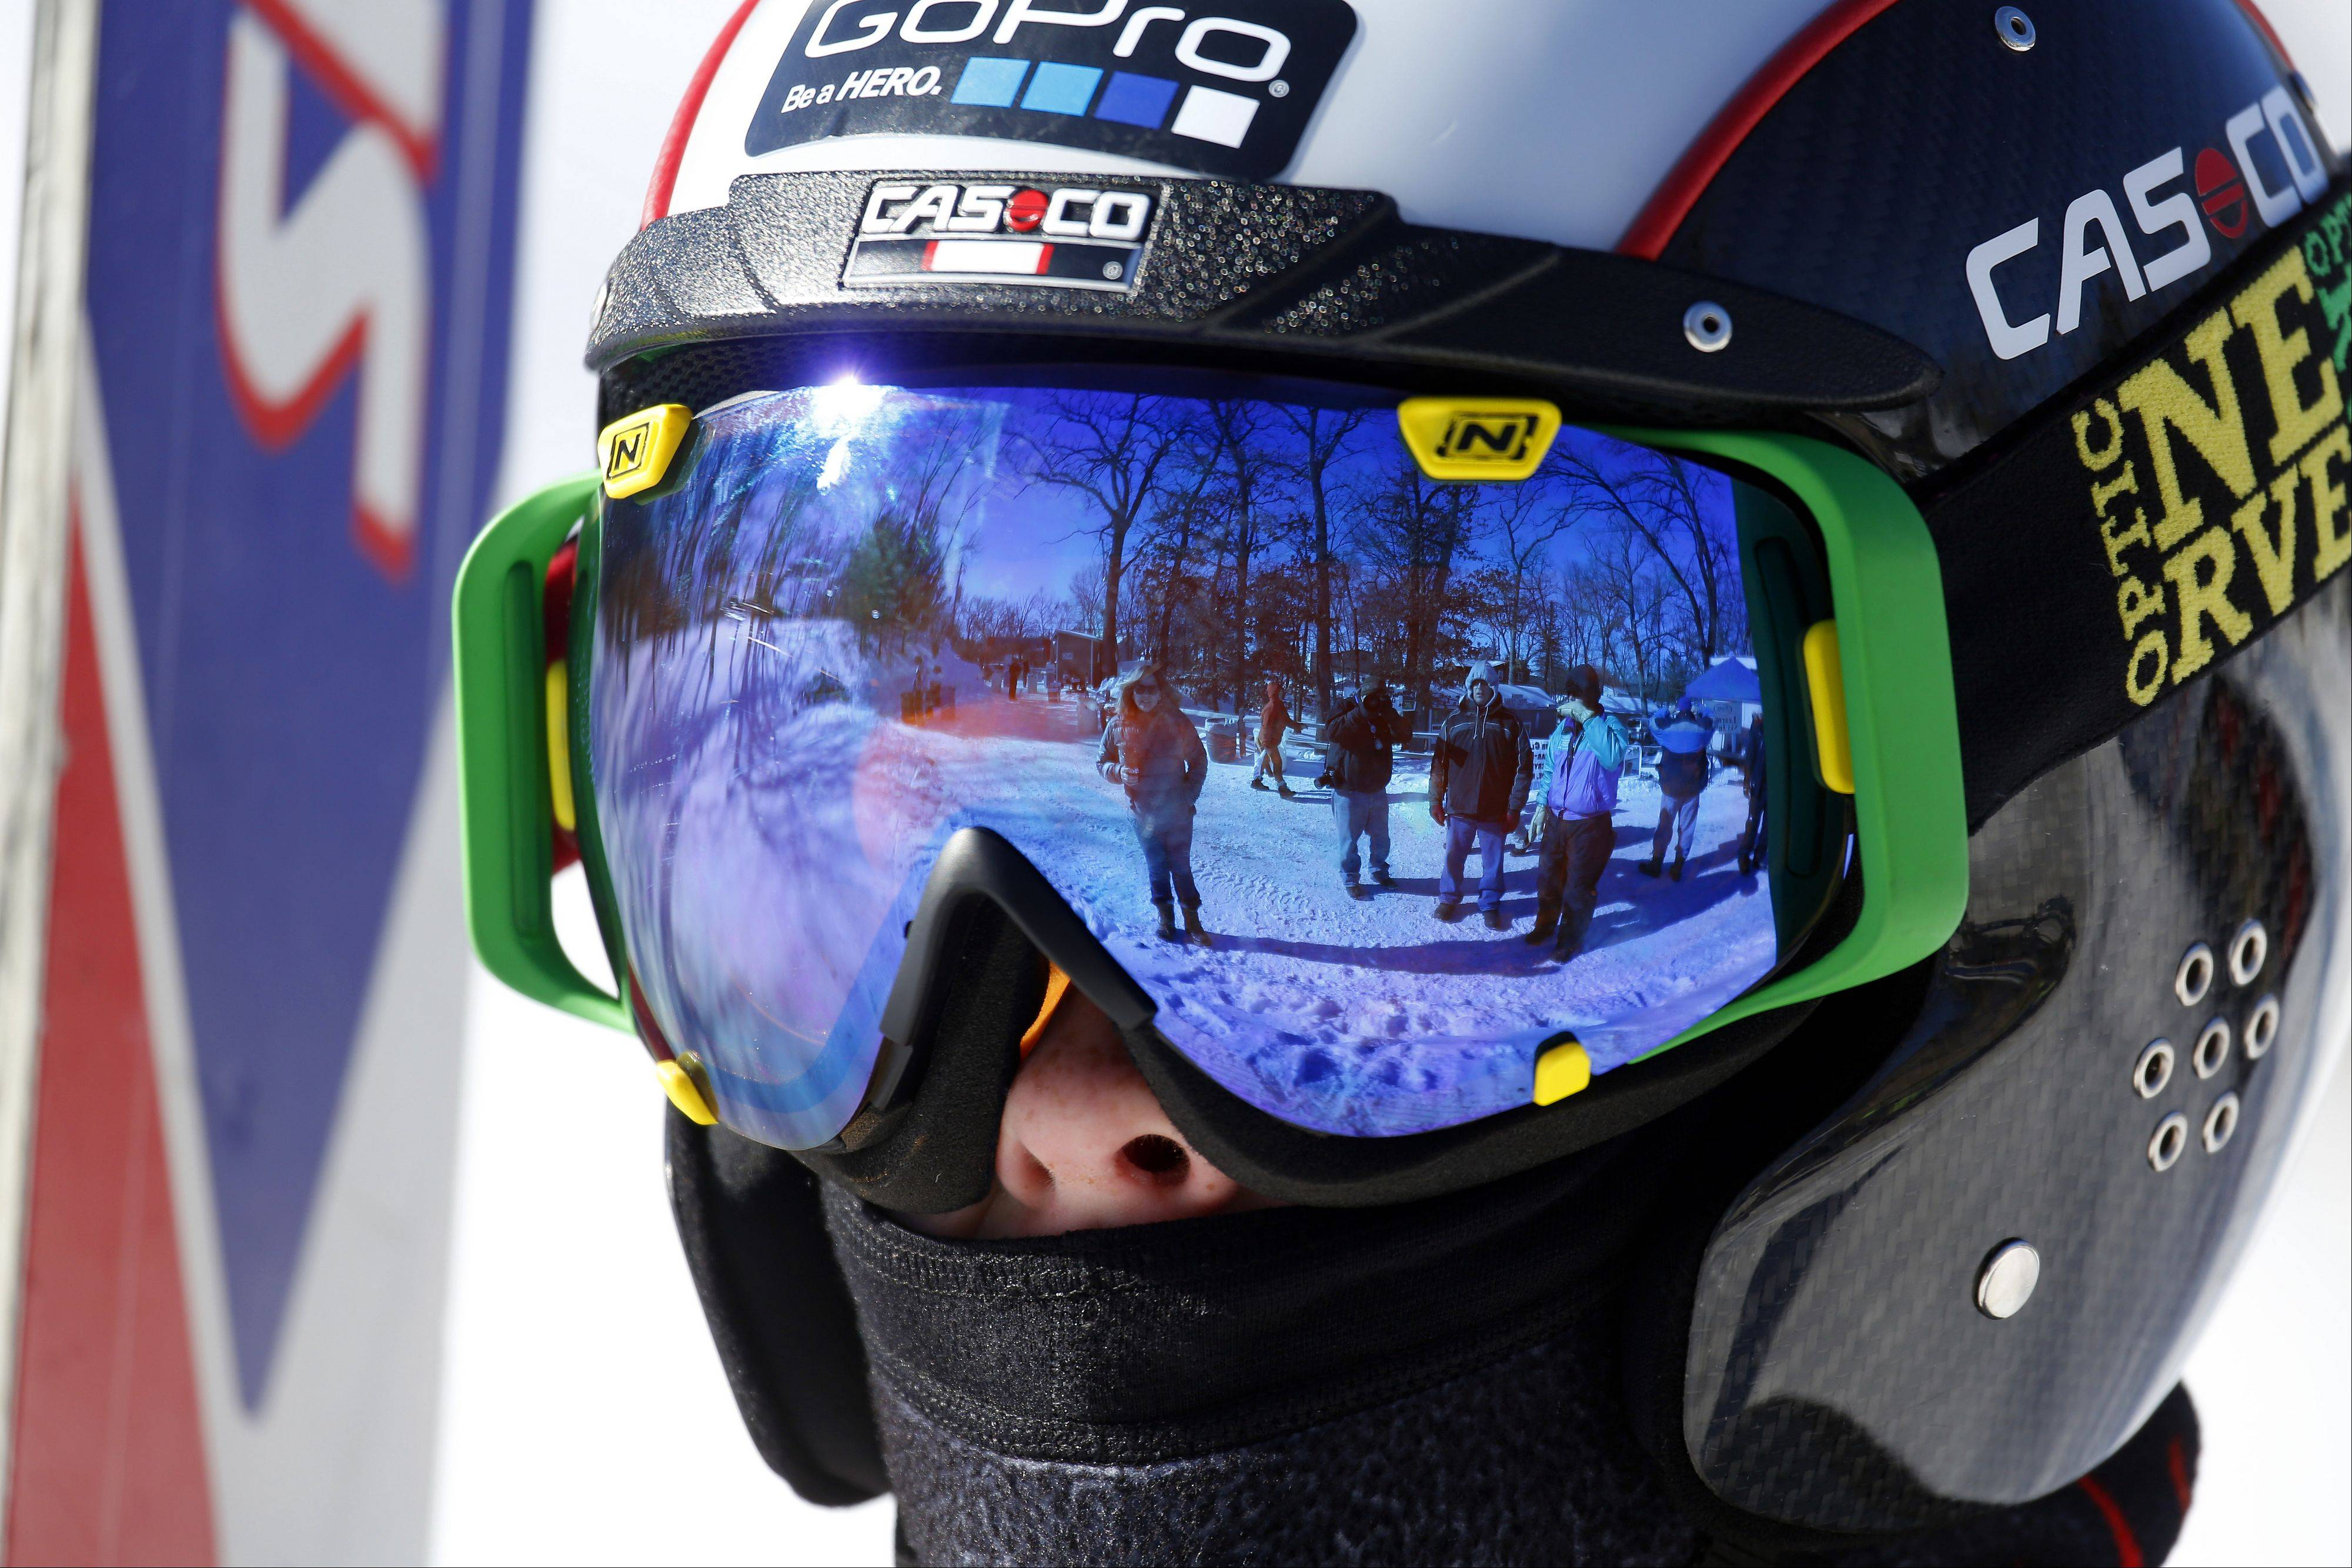 All bundled up for some practice jumps, 10-year-old Matt Smith of Cary prepares for the next run during the 109th Norge Ski Jump Tournament Saturday in Fox River Grove.